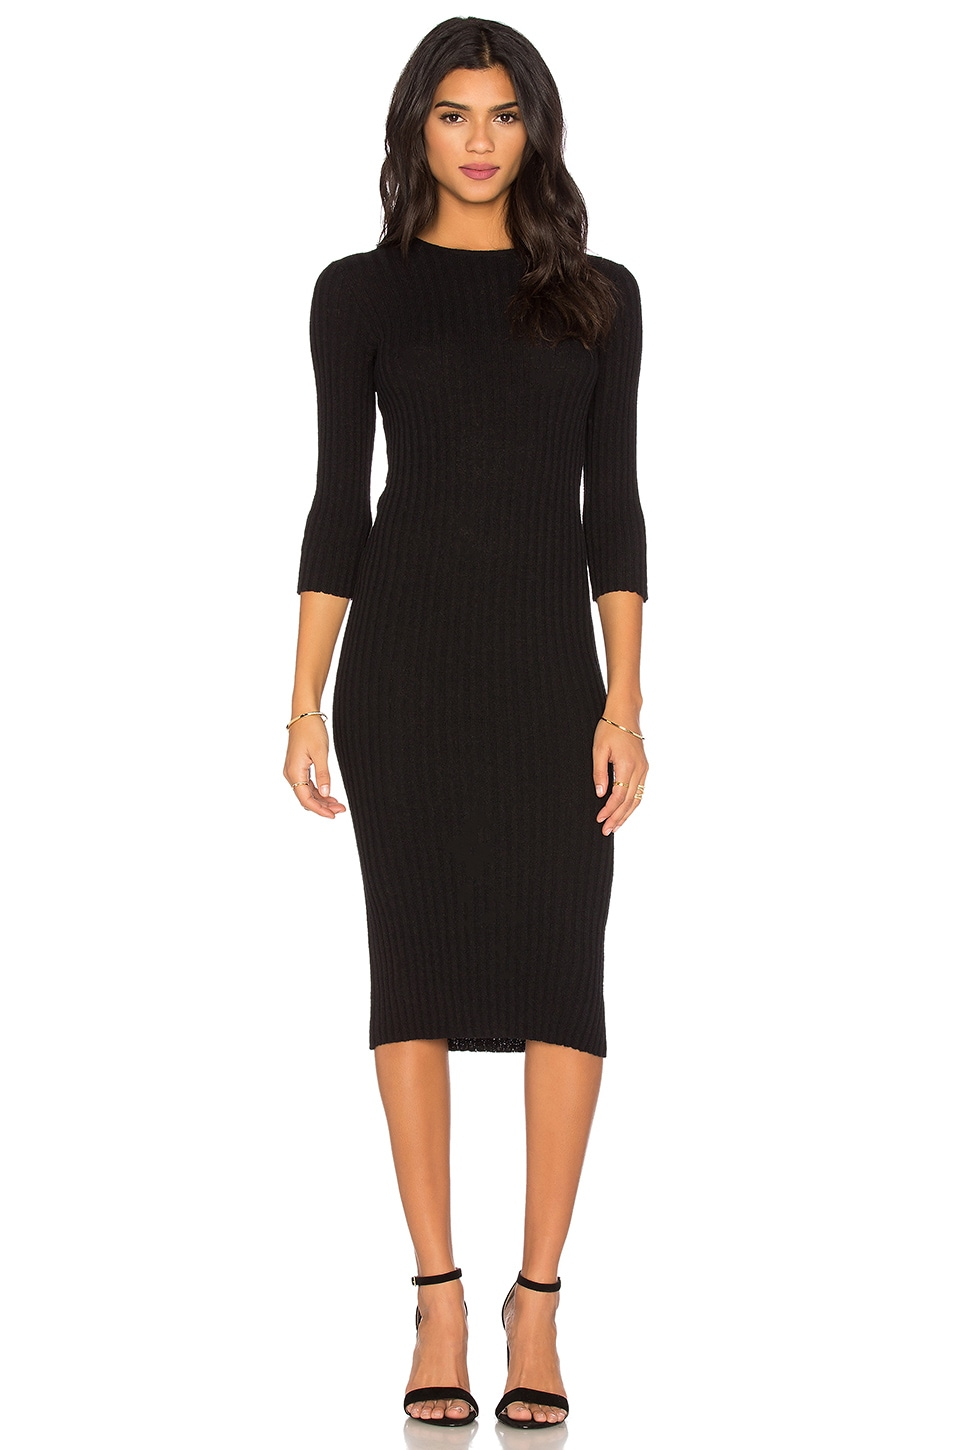 James Perse Ribbed Cotton Terry Dress in Black